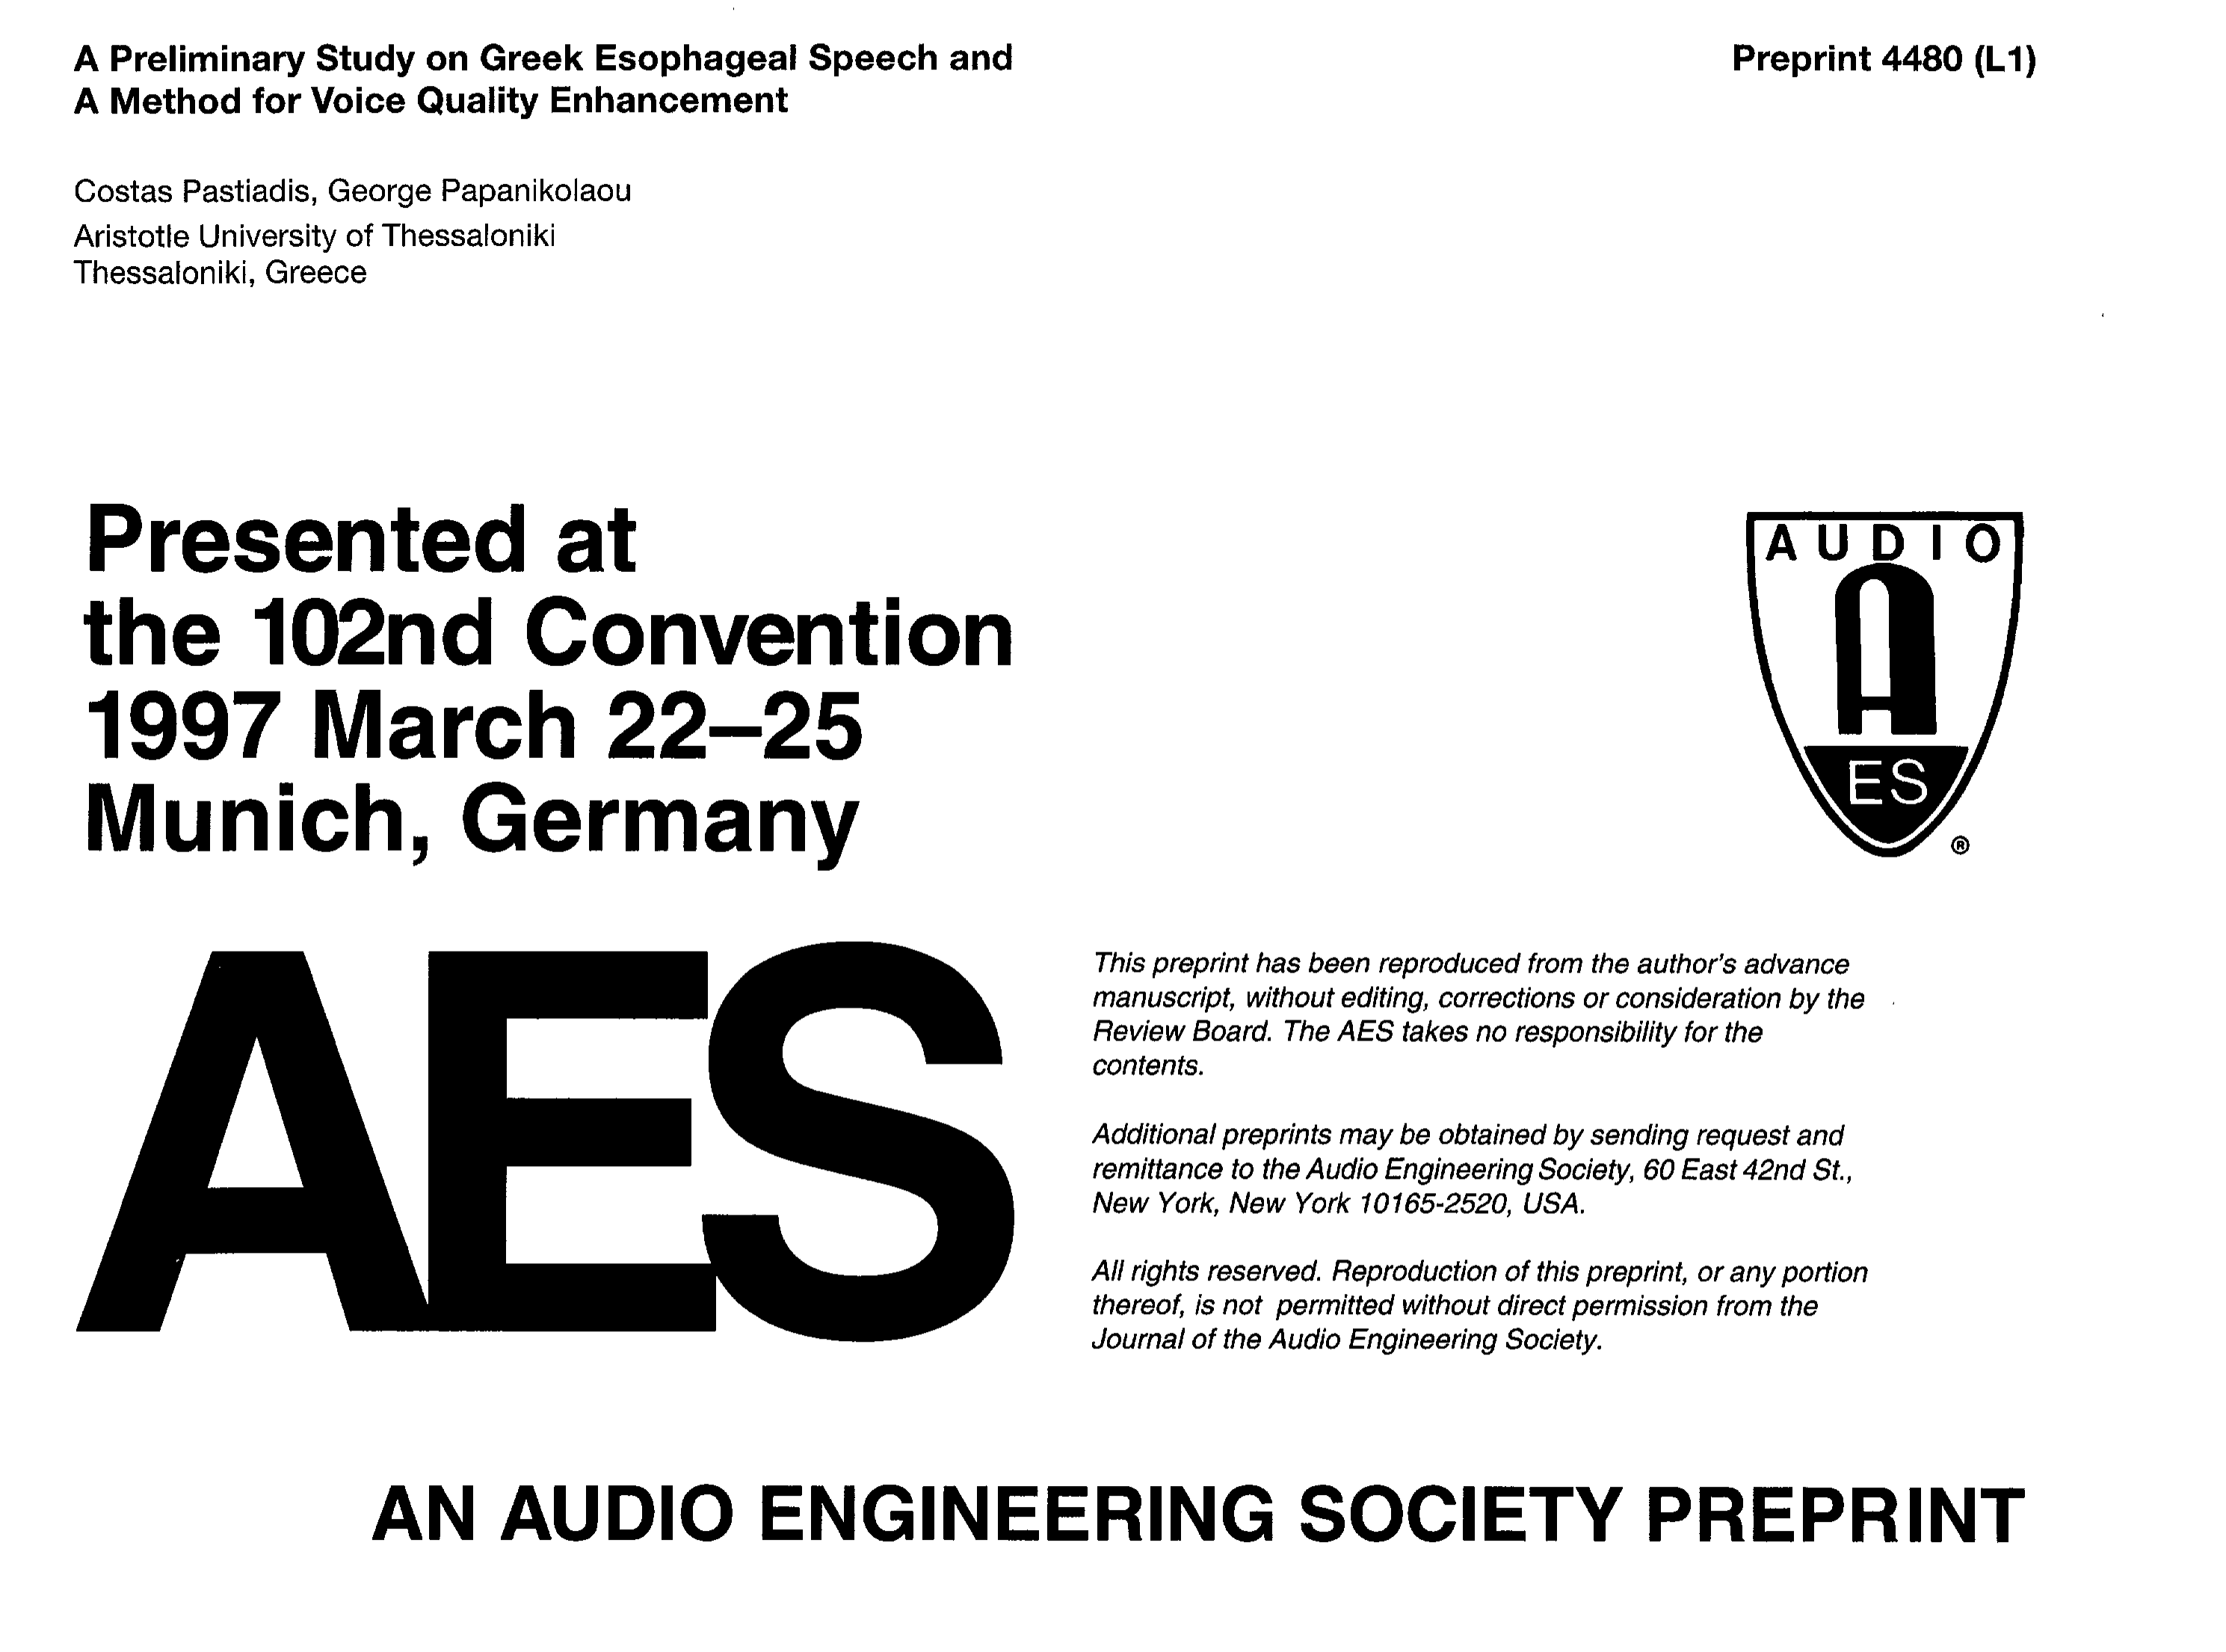 Aes E Library A Preliminary Study On Greek Esophagael Speech And Block Diagram Of Recognition Procedures Method For Voice Quality Enhancement